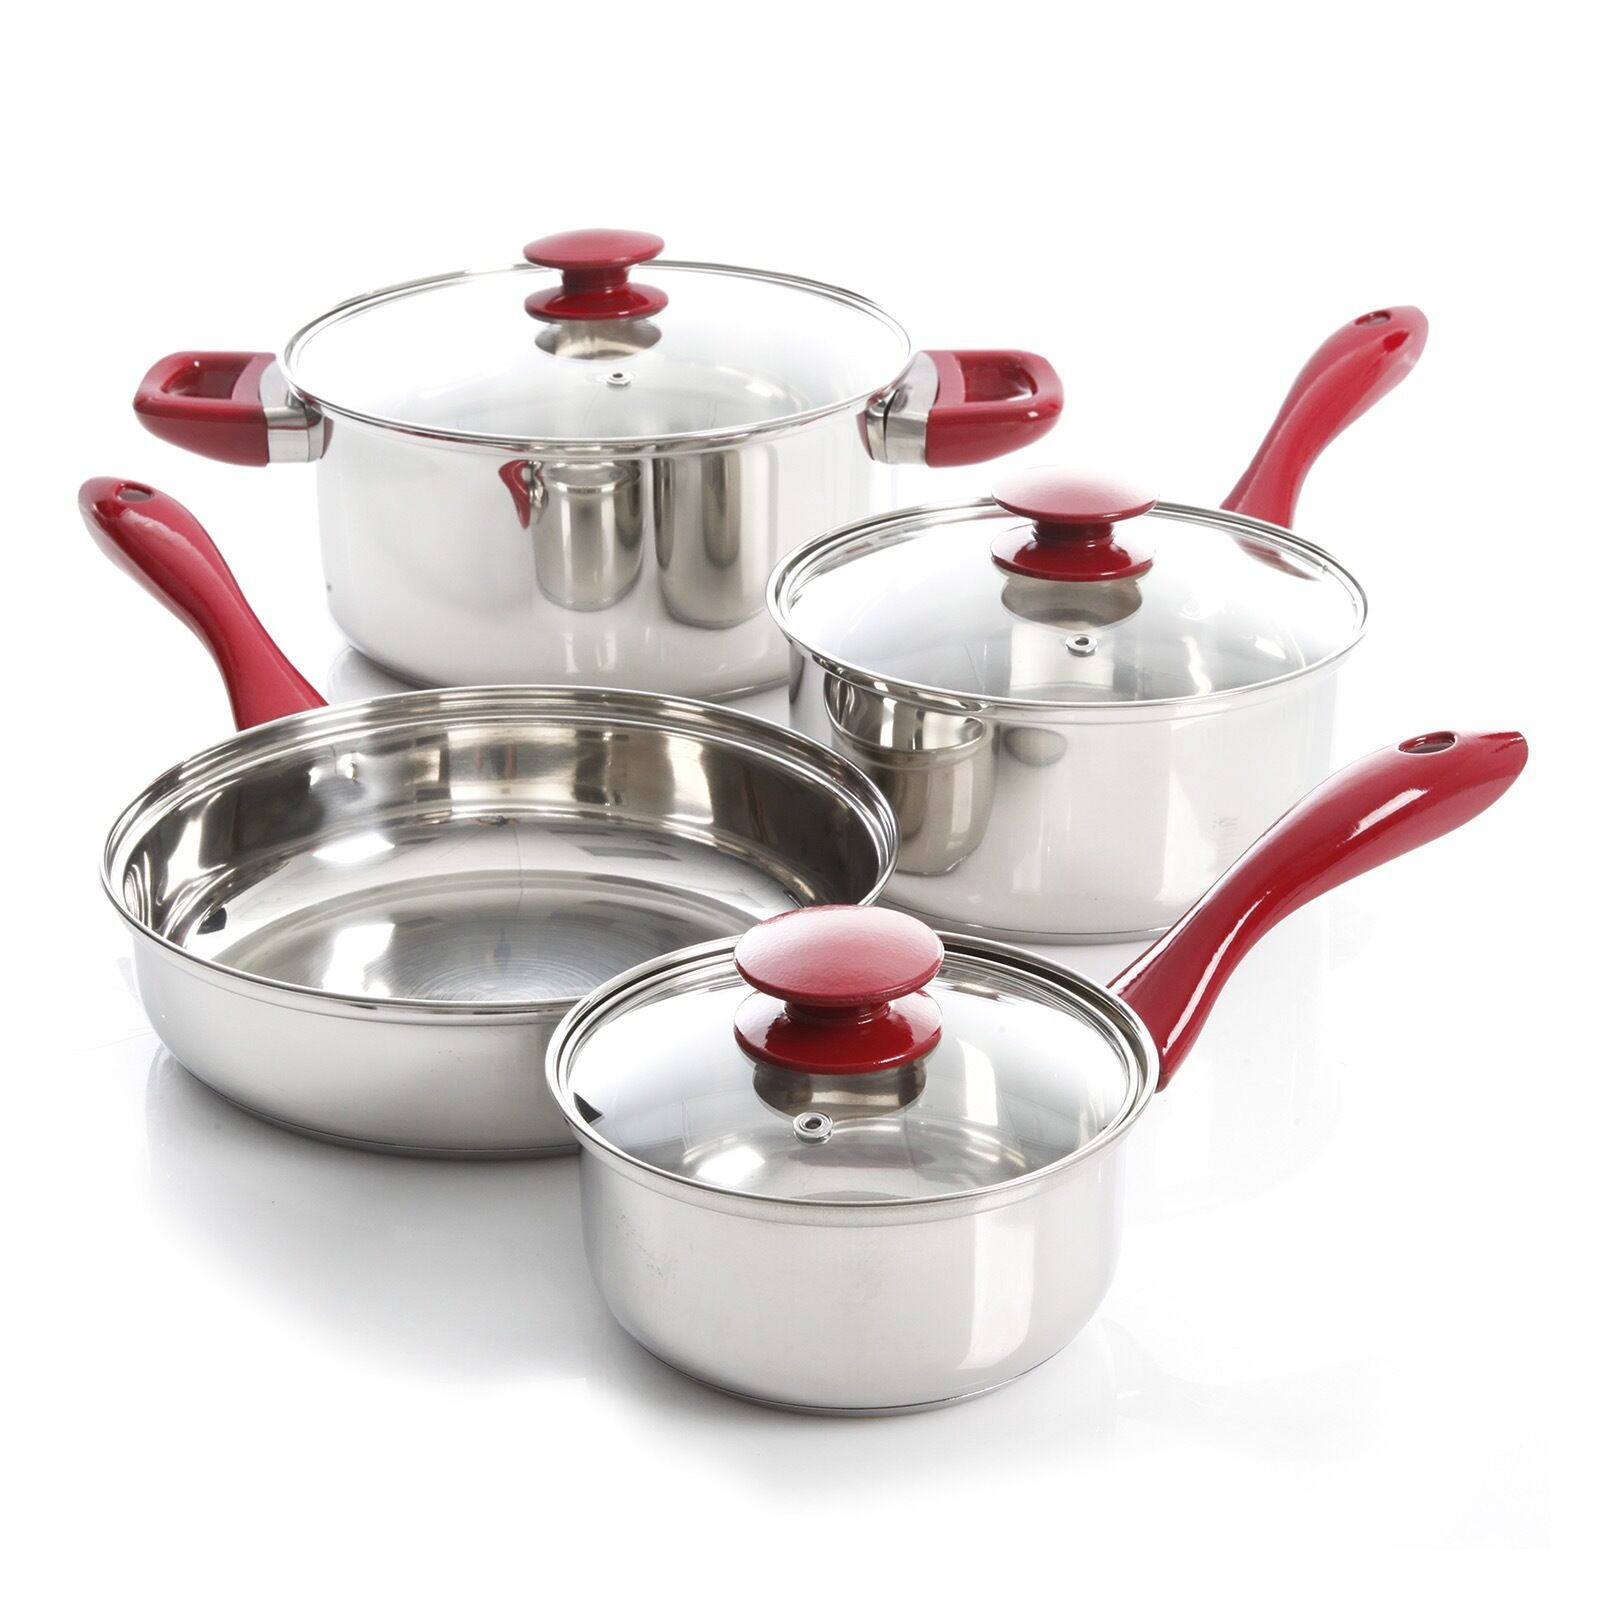 OSTER CRAWFORD 7 PC STAINLESS STEEL STEEL STEEL CUTLERY SET SAUCE PAN DUTCH OVEN FRY PAN 348092